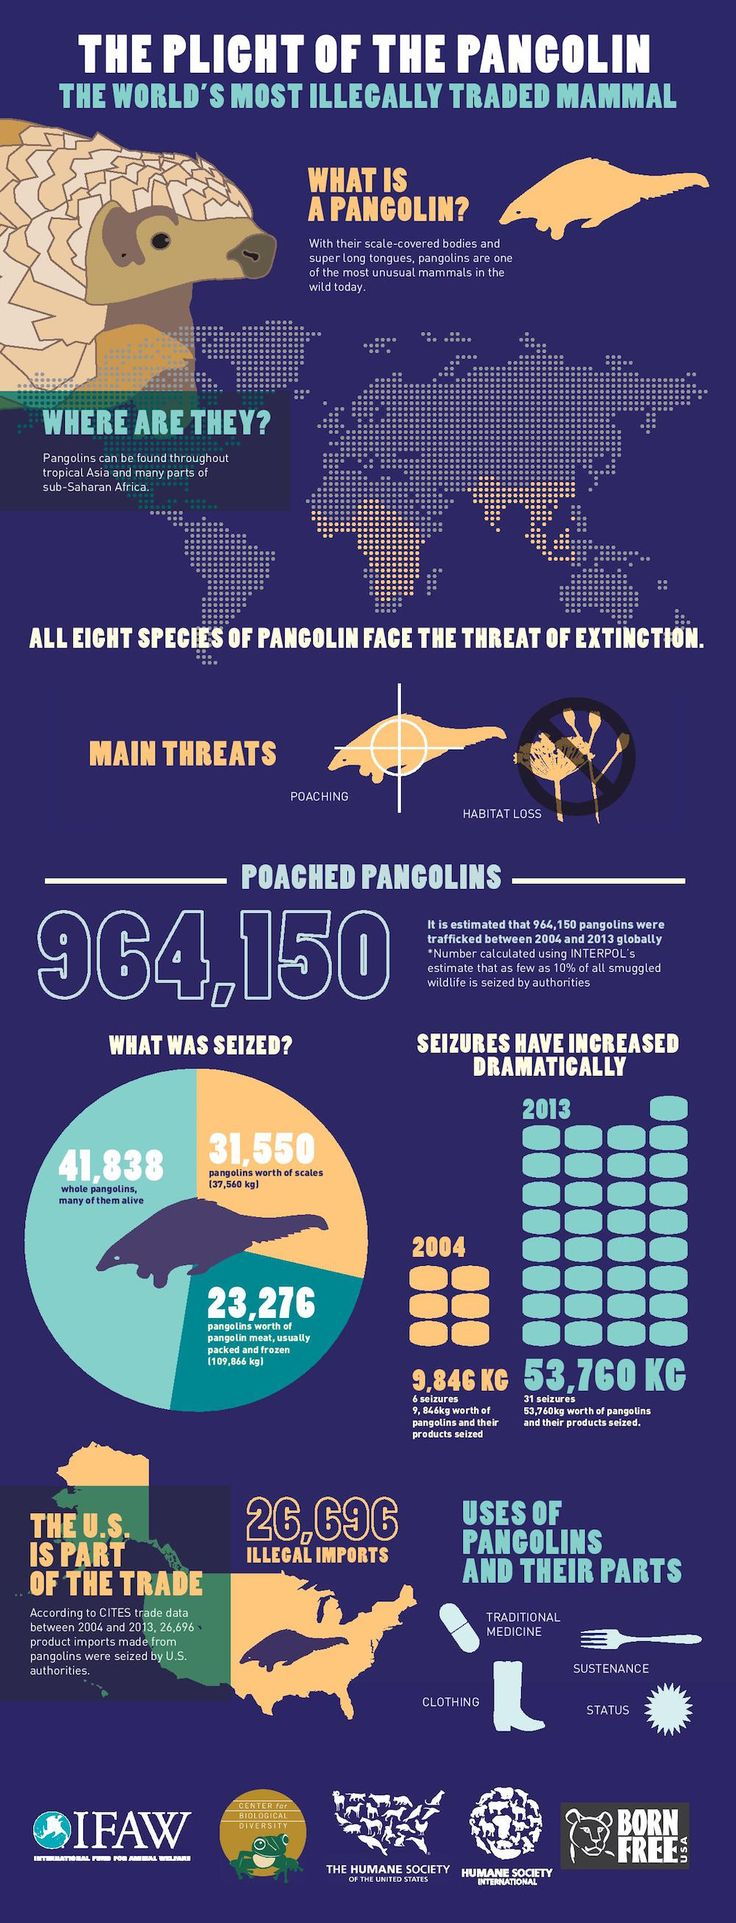 IFAW Infographic_Pangolin #This! Hashtags: #MajesticVision #endangered